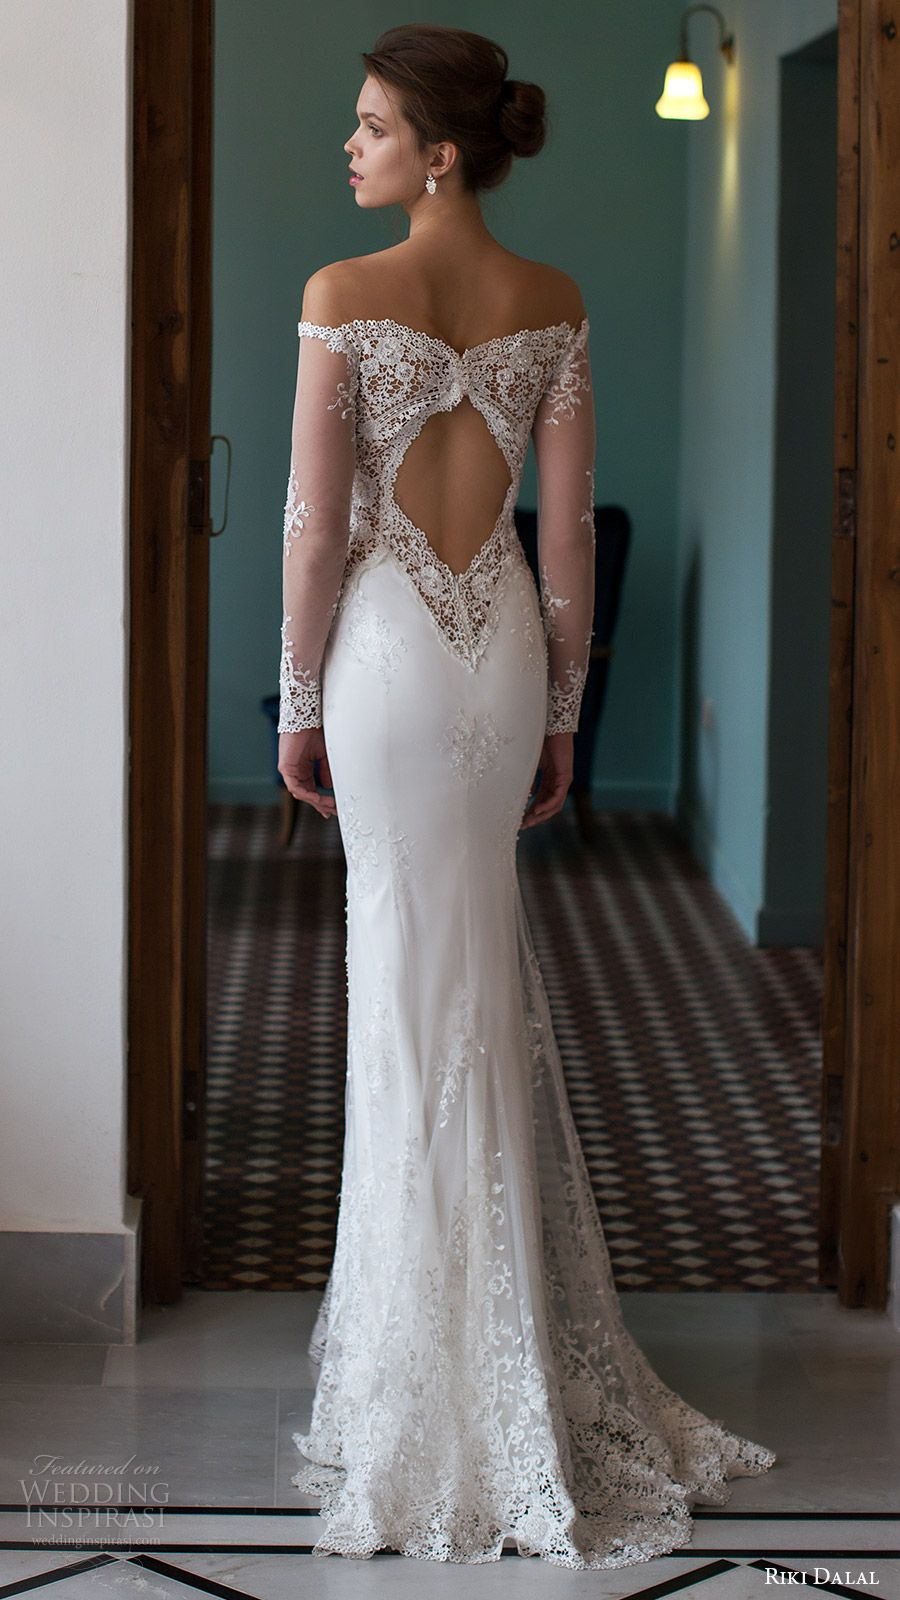 Riki dalal wedding dresses u ucveronaud bridal collection